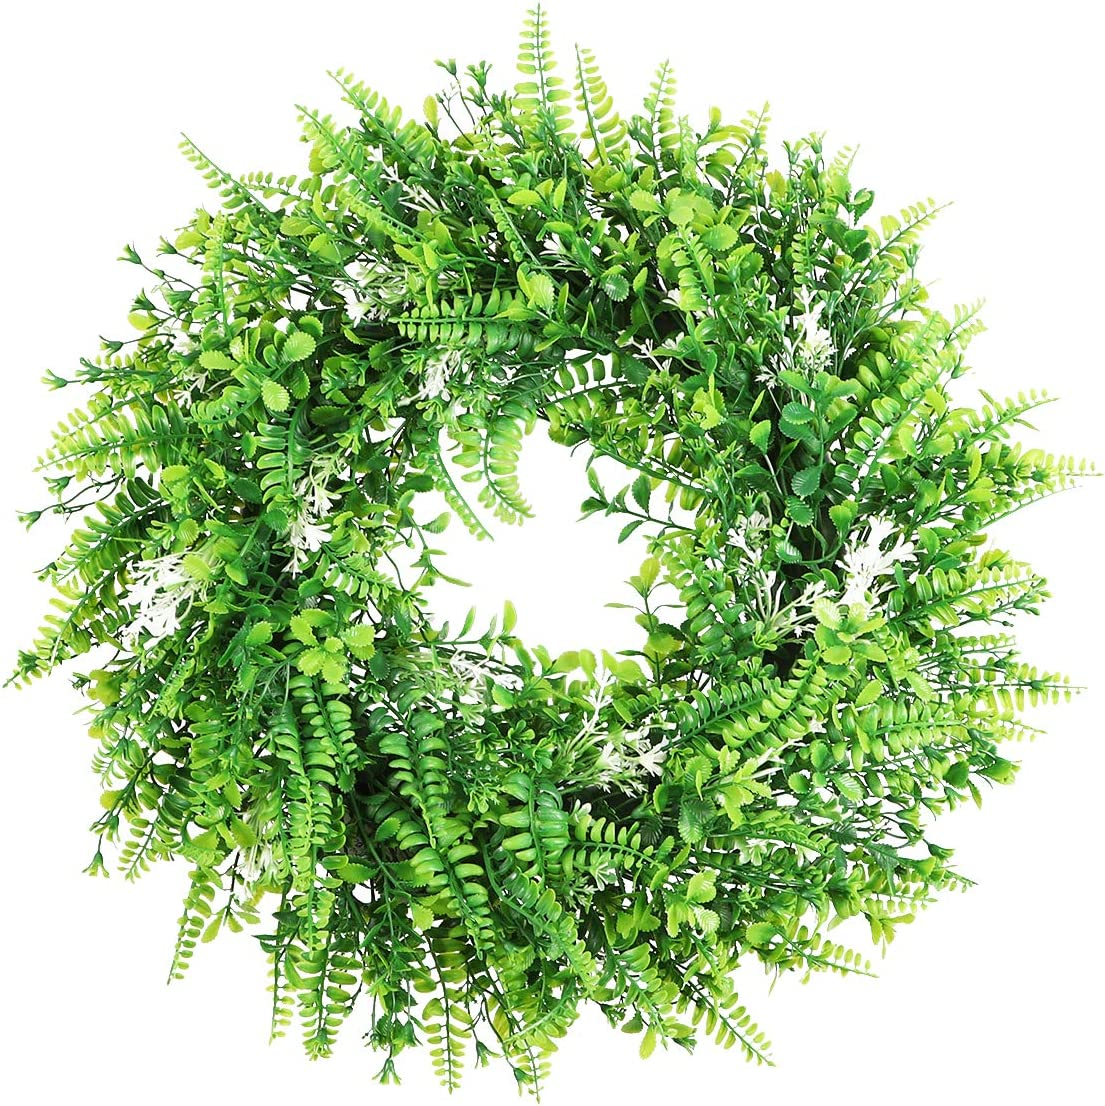 """Capslpad 18"""" Artificial Front Door Wreath Green Leaves with White Flowers Summer Spring Door Wreath Fake Wreath for Home Kitchen Patio Porch Farmhouse Wedding Holidays Decor"""